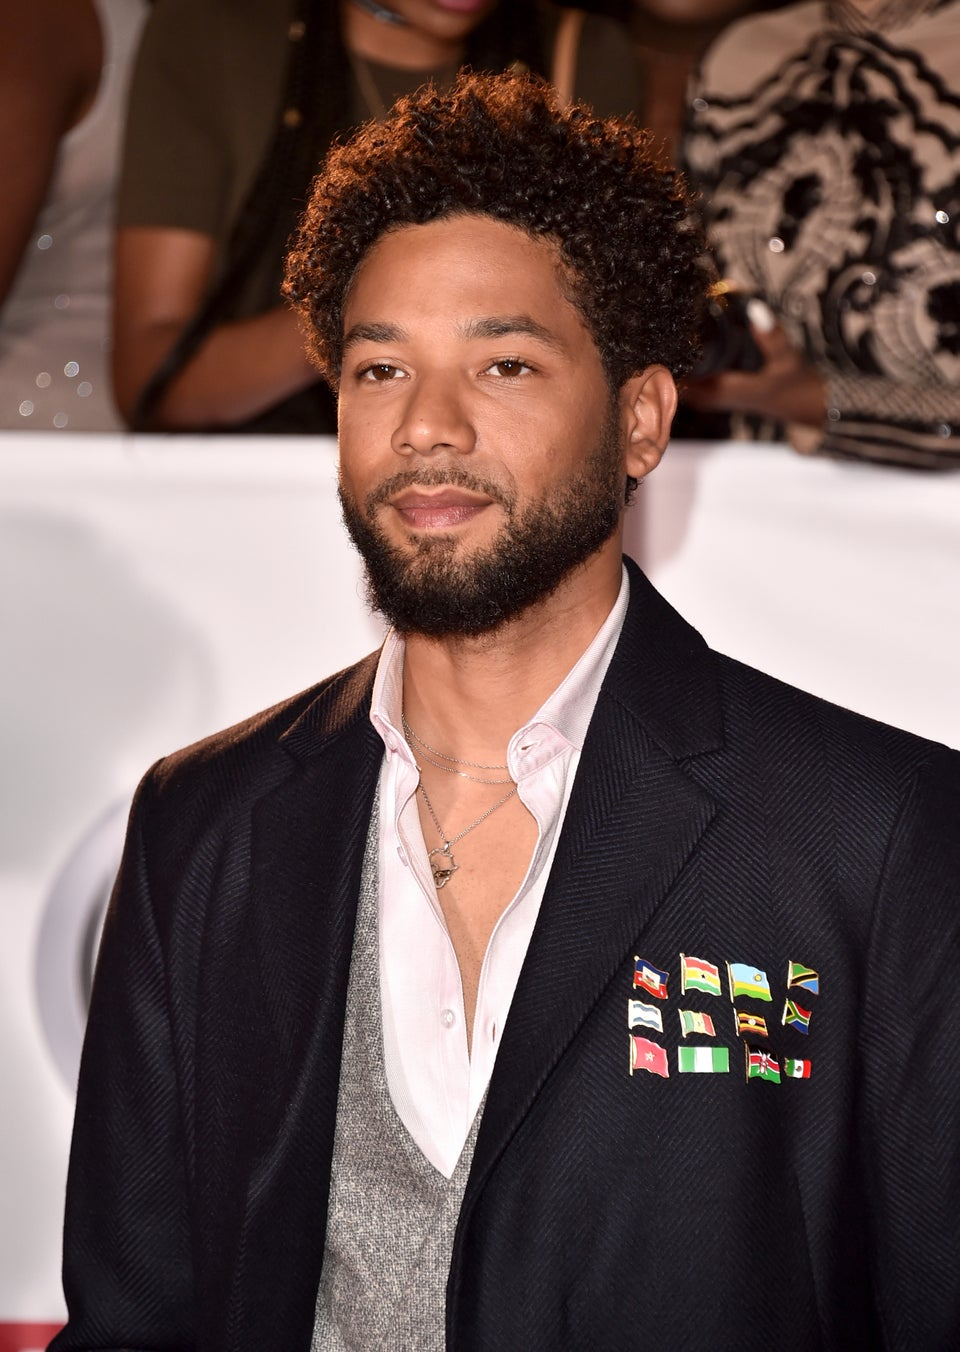 Jussie Smollett Now Reportedly Required To Have 24/7 Armed Security Following Attack